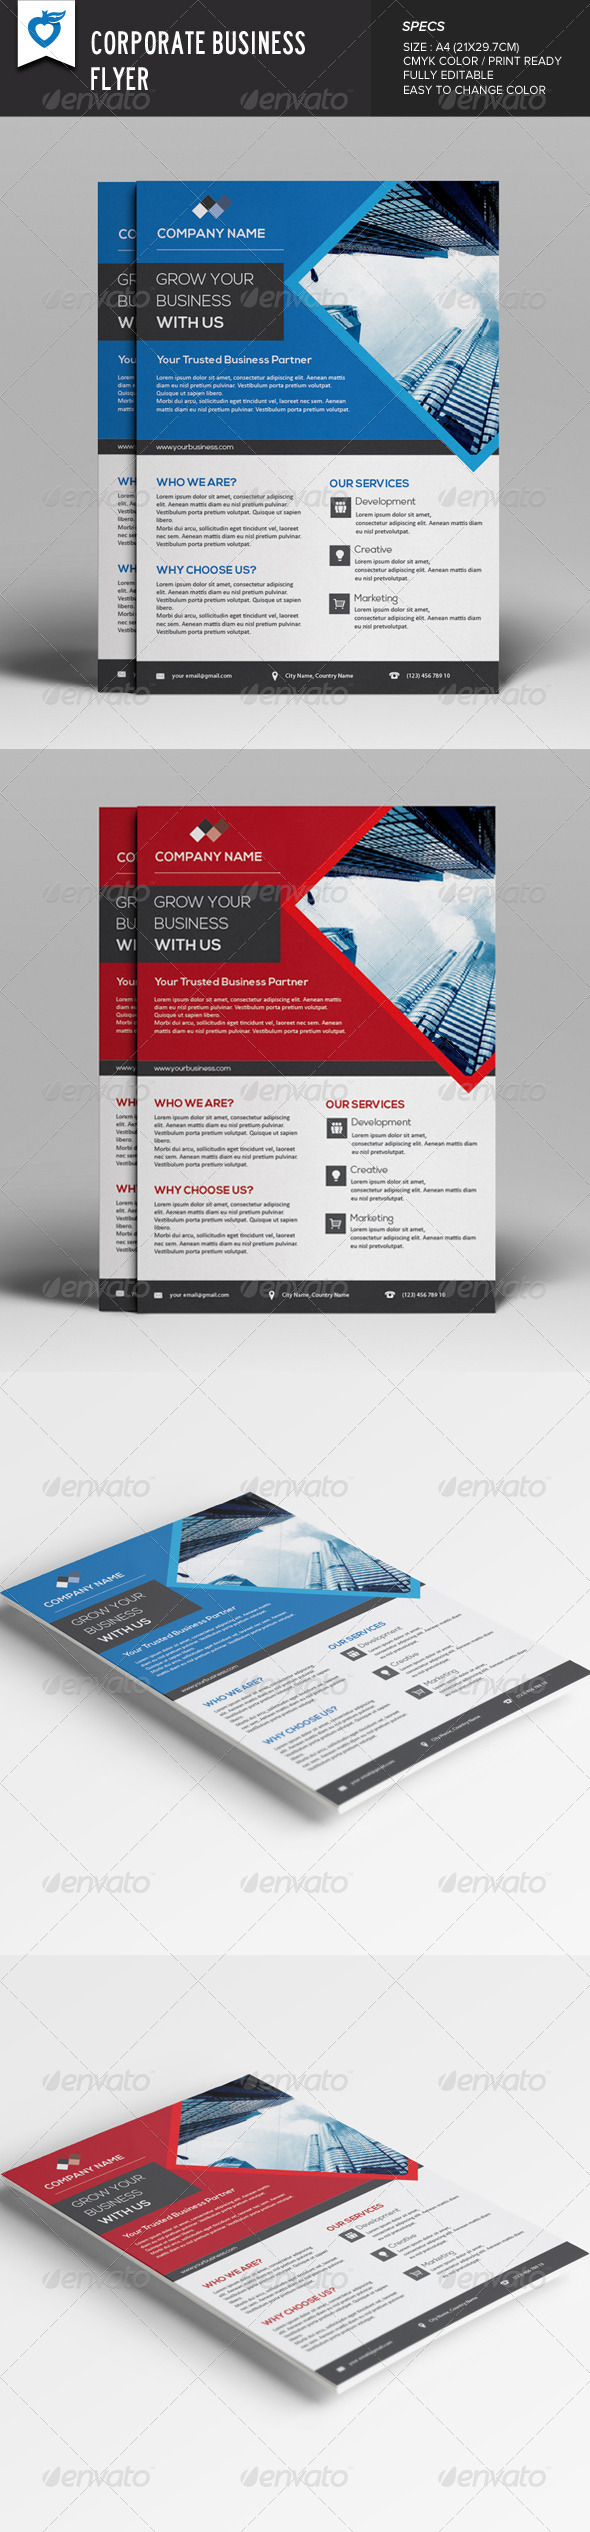 GraphicRiver Corporate Business Flyer v8 7987318